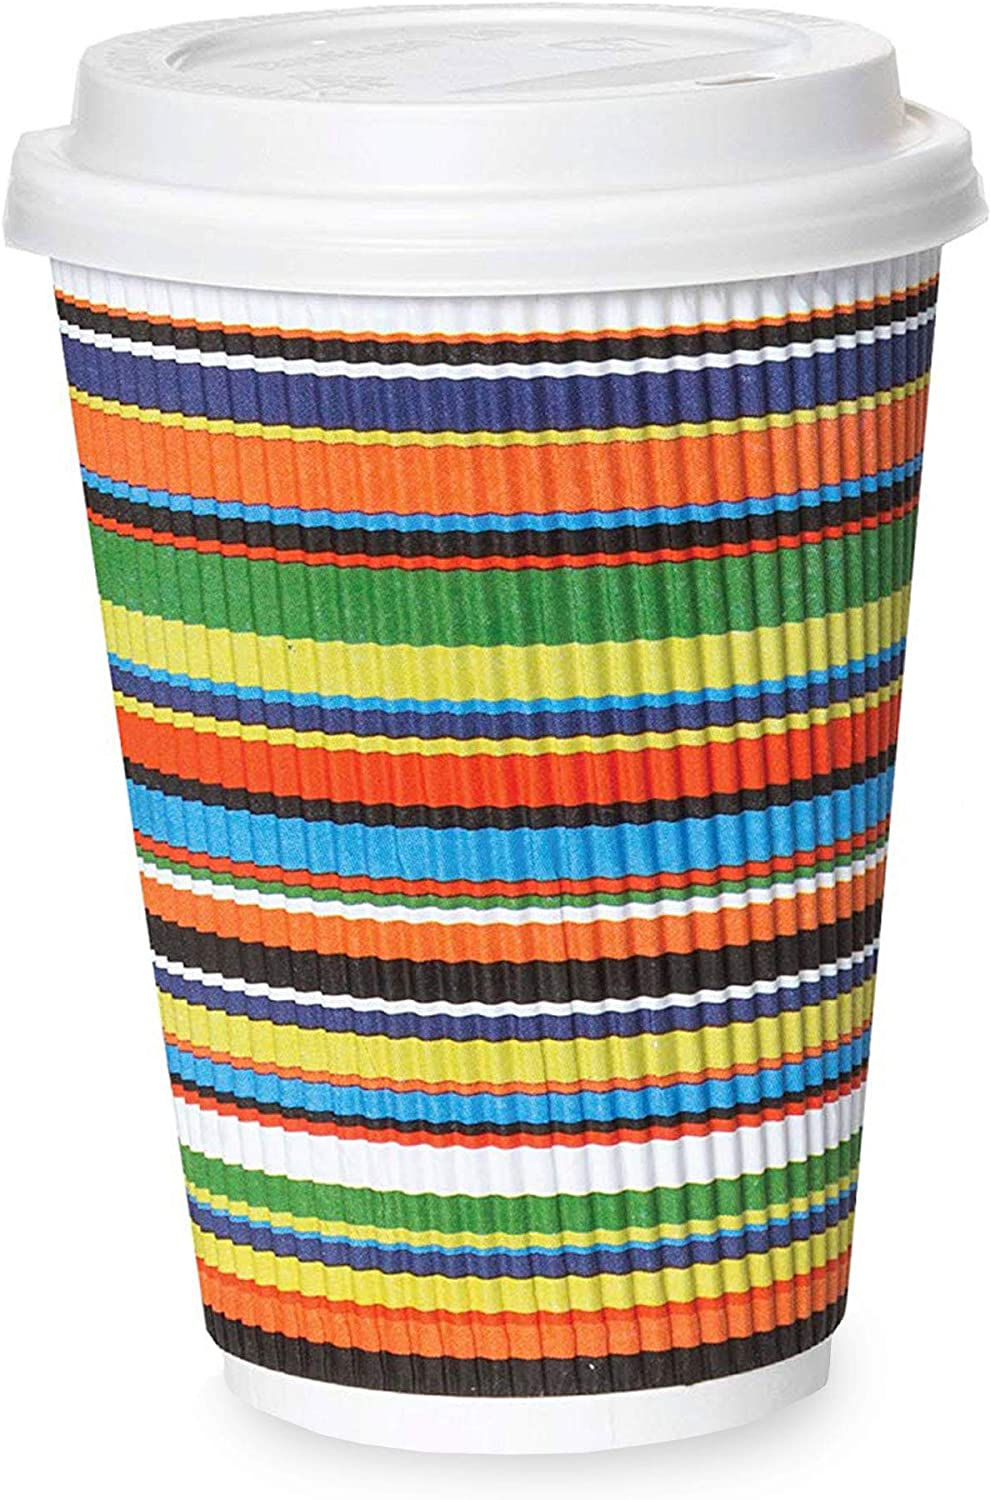 12 oz to Go Coffee Cups with Lids Disposable, Insulated & Recyclable Striped Multicolor Ripple Paper Coffee Cups, 50 Pack